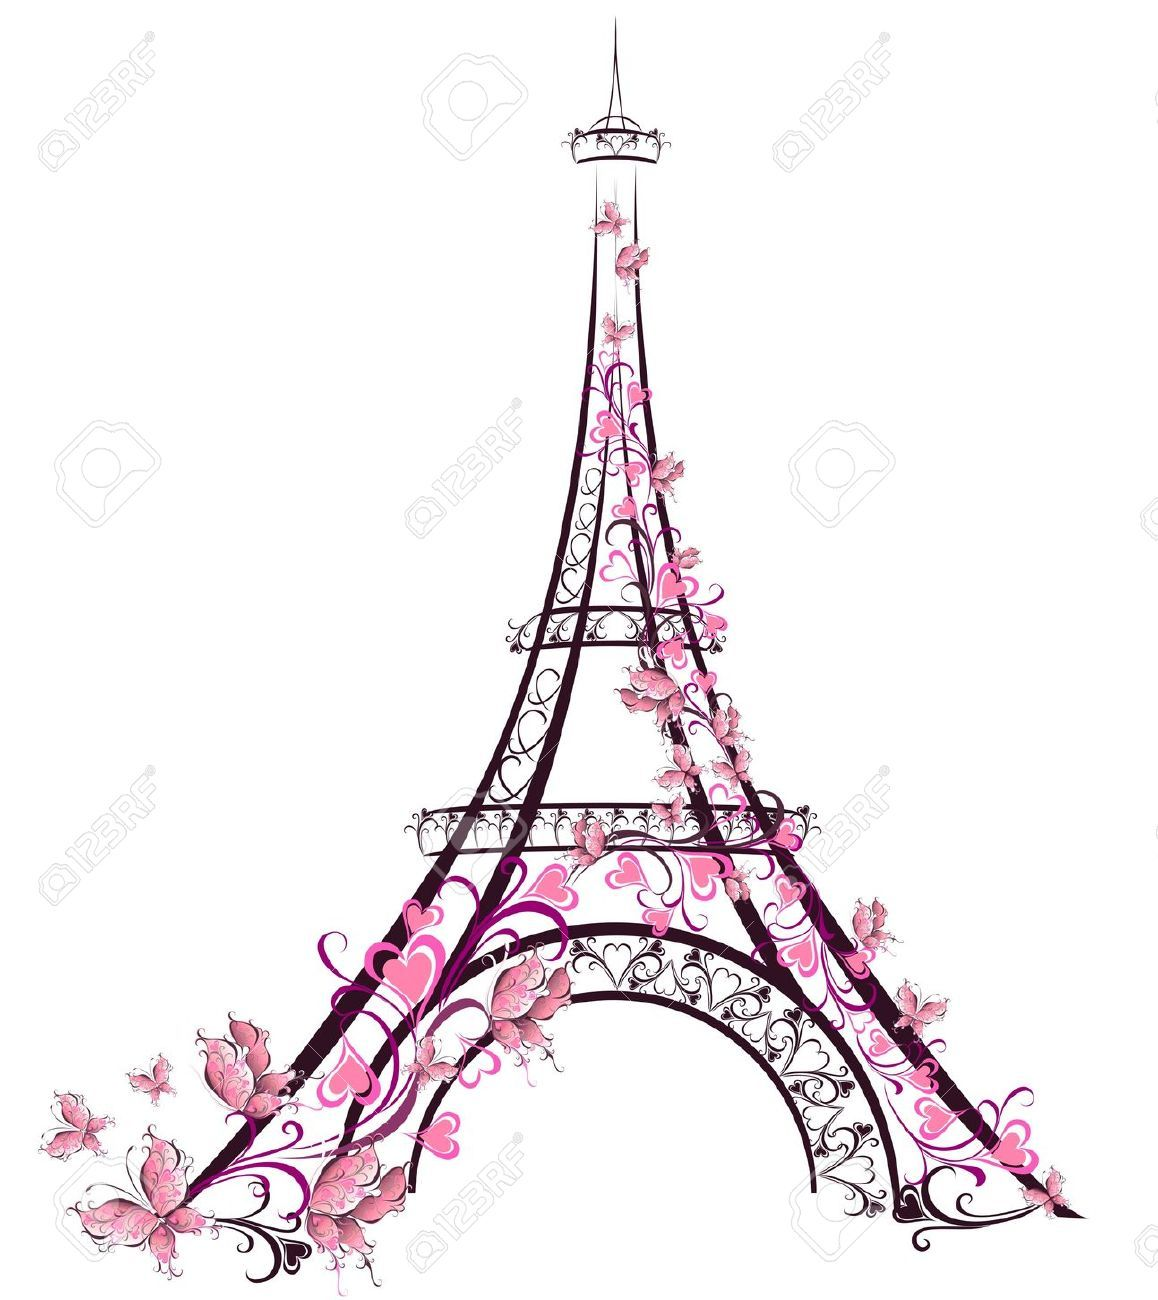 10 139 eiffel tower stock vector illustration and royalty free painted glasses pinterest. Black Bedroom Furniture Sets. Home Design Ideas